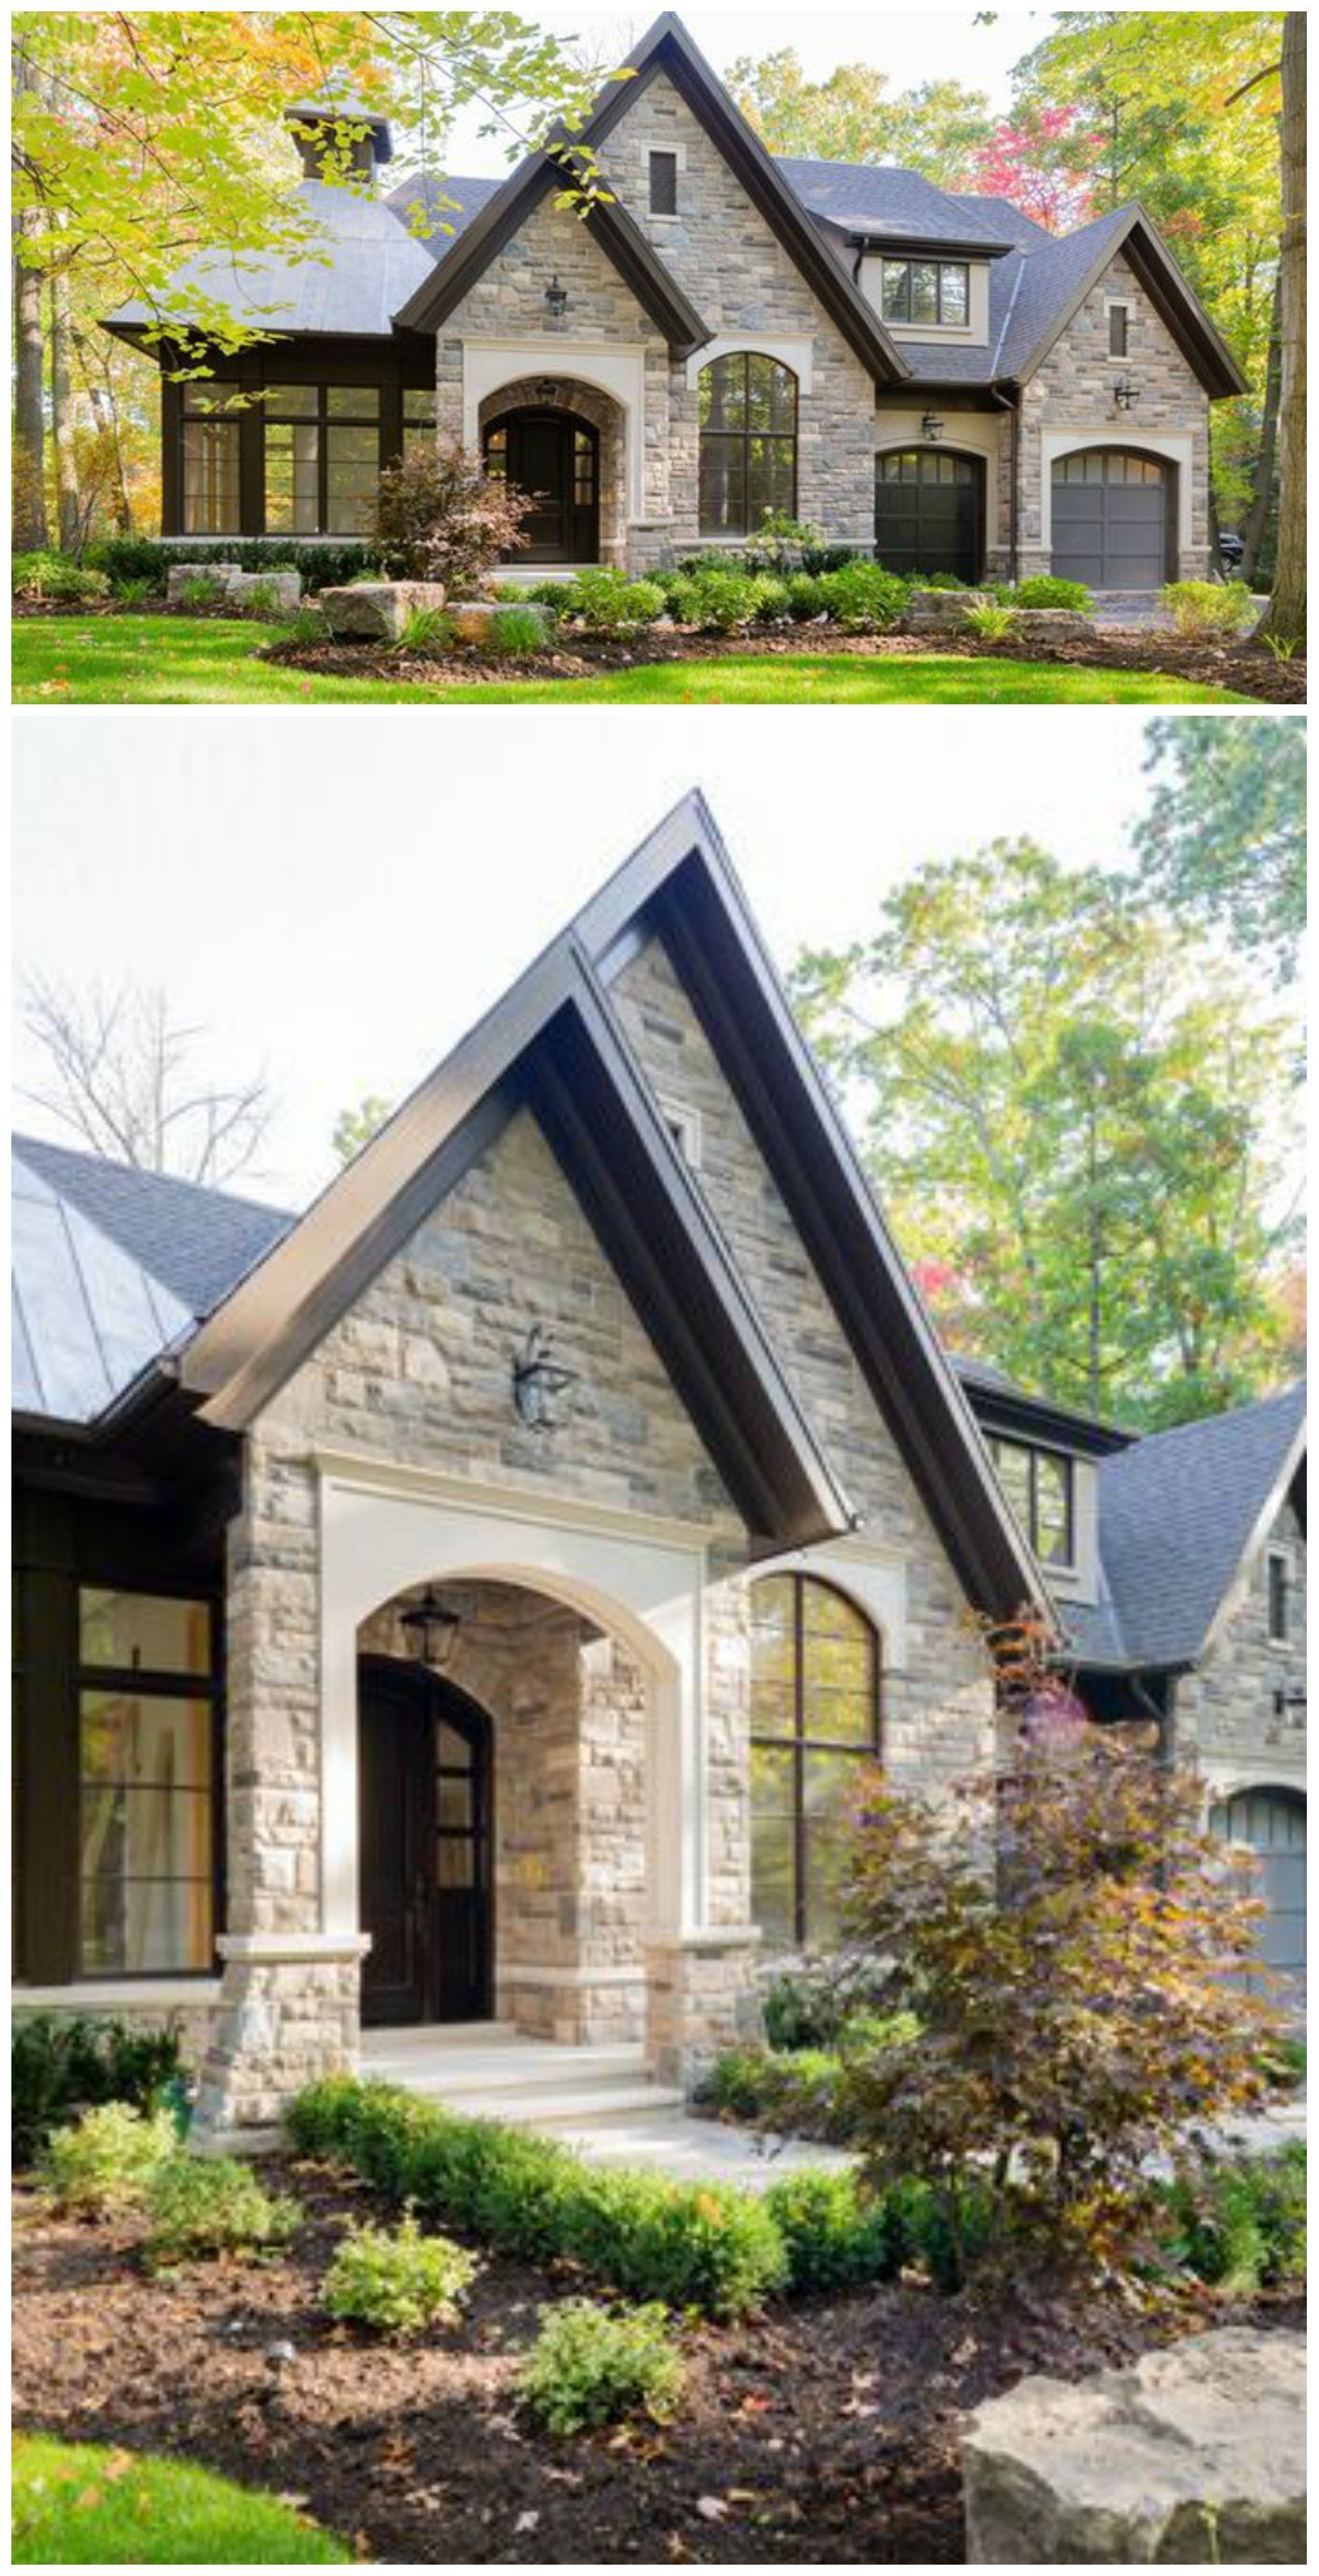 Beautiful Home David Small Design. Exterior Envy